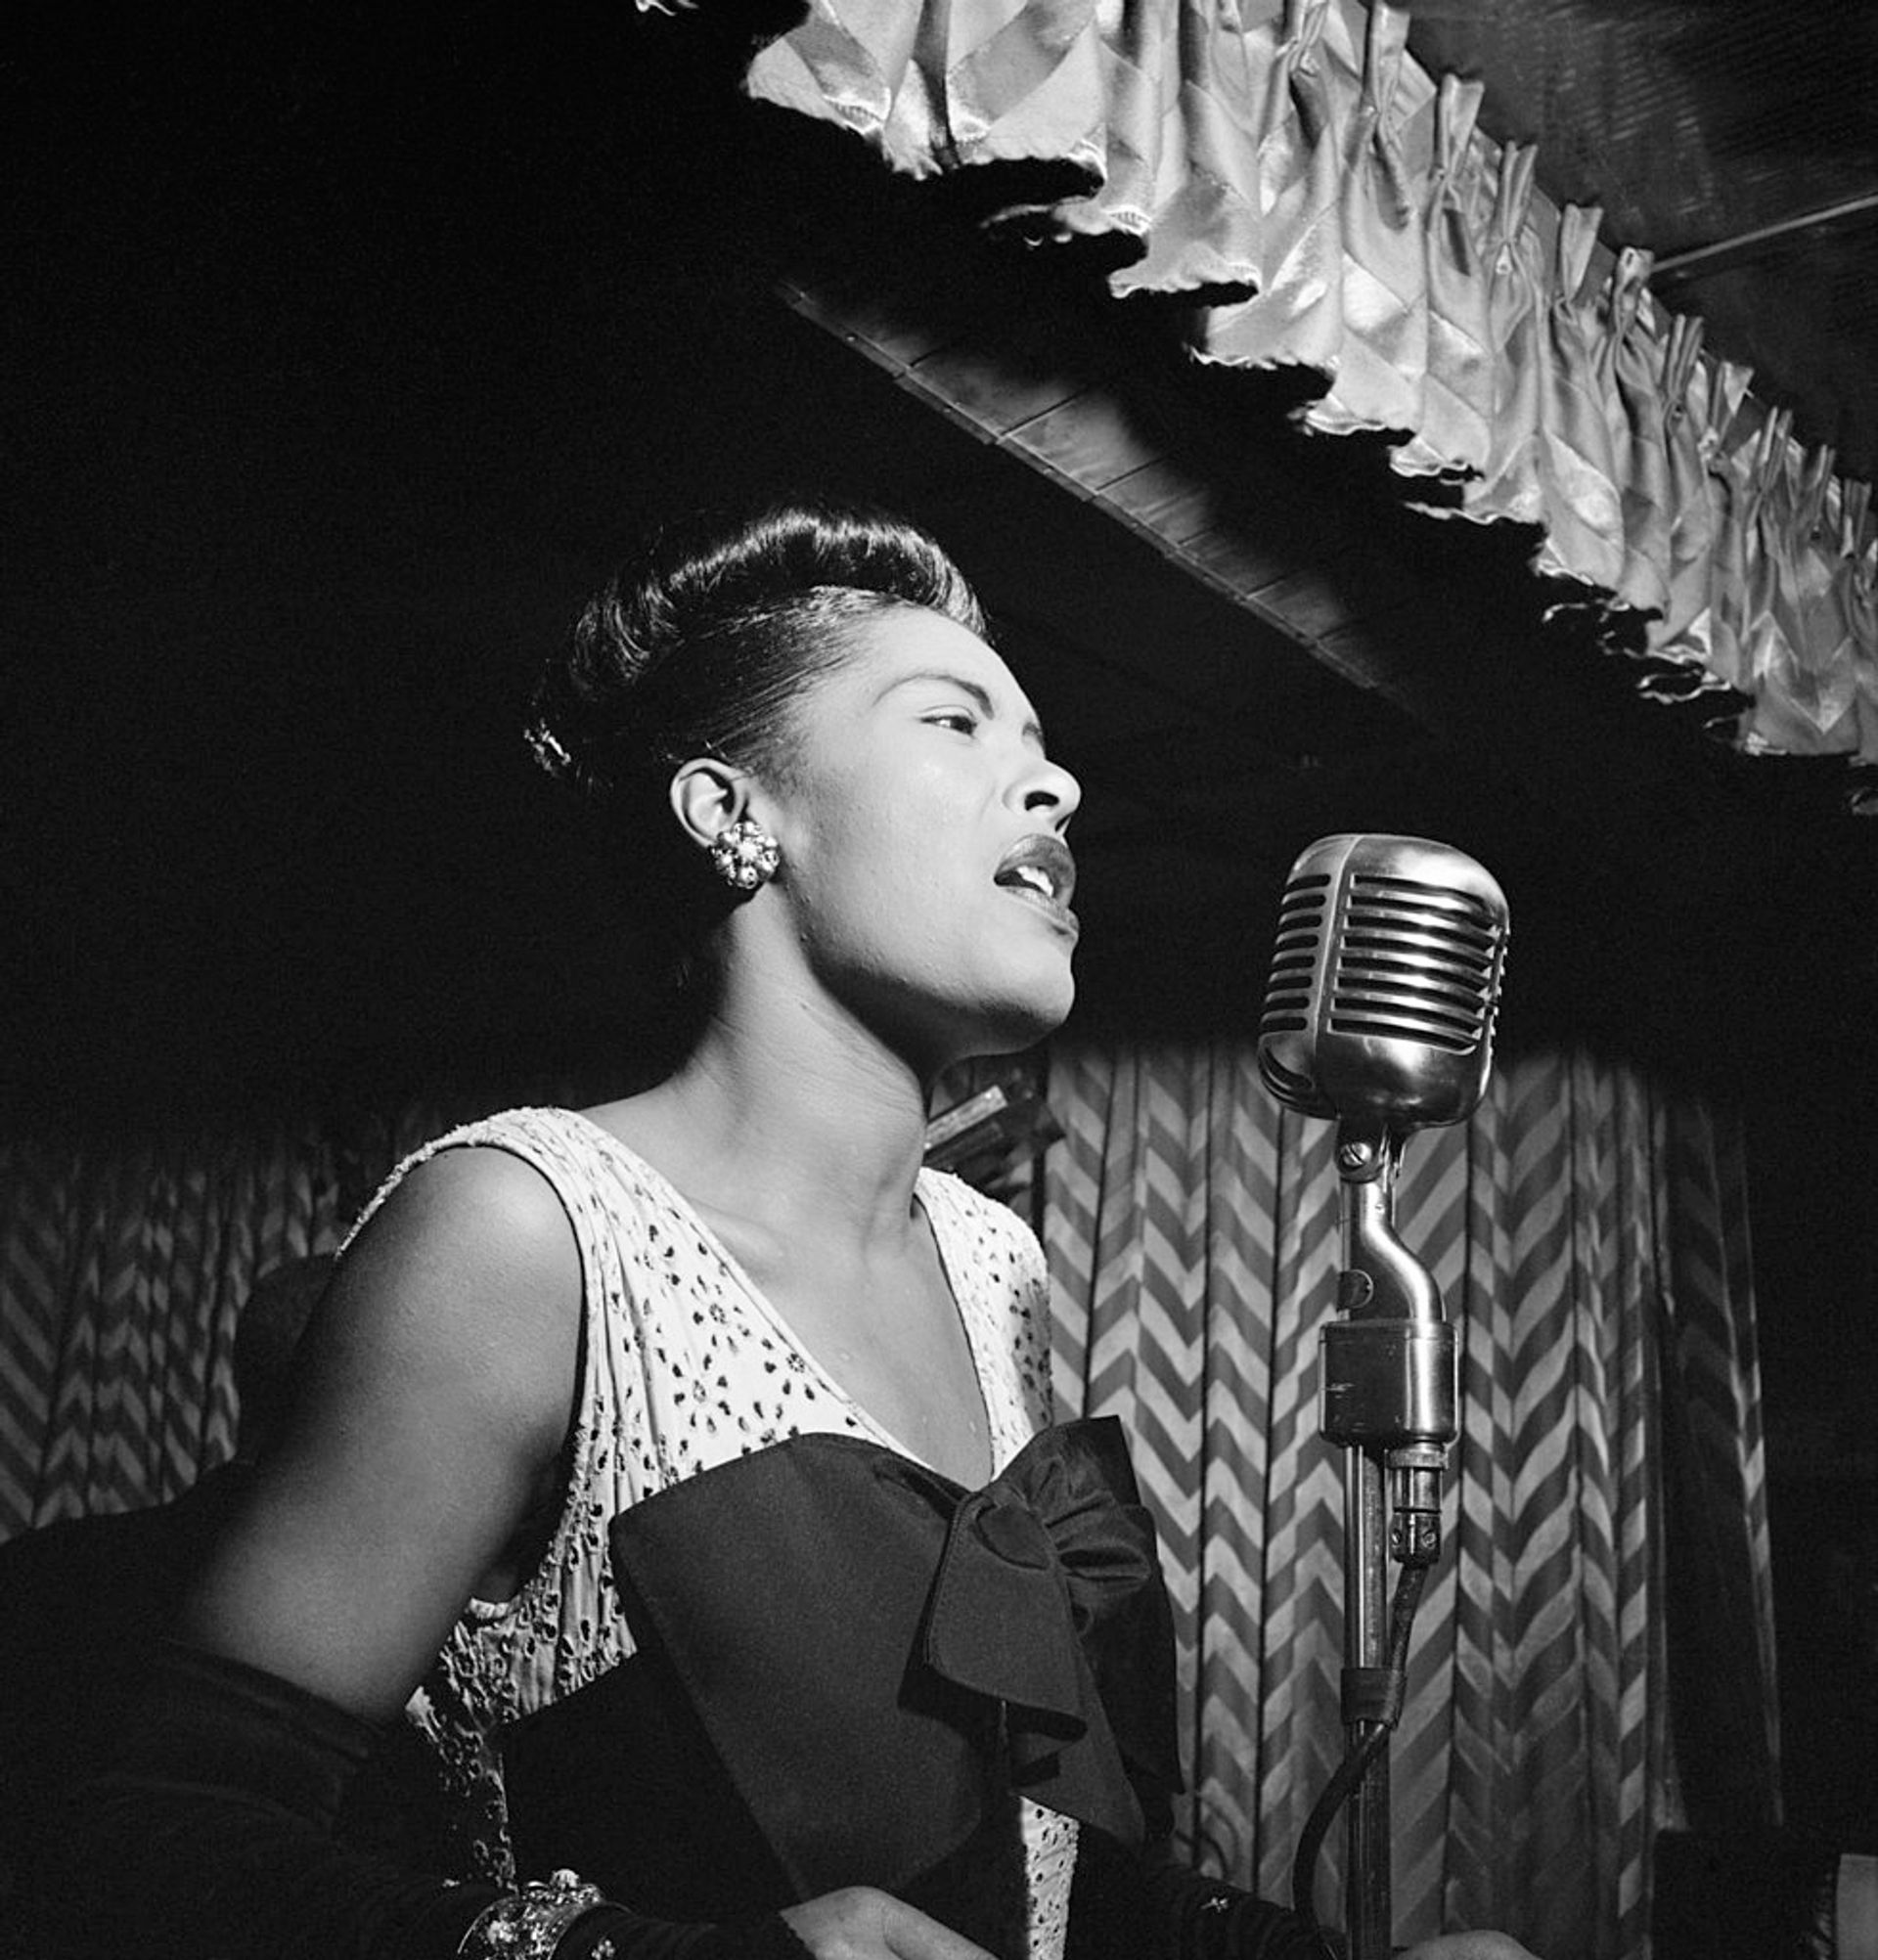 Billie Holiday in the 1940s